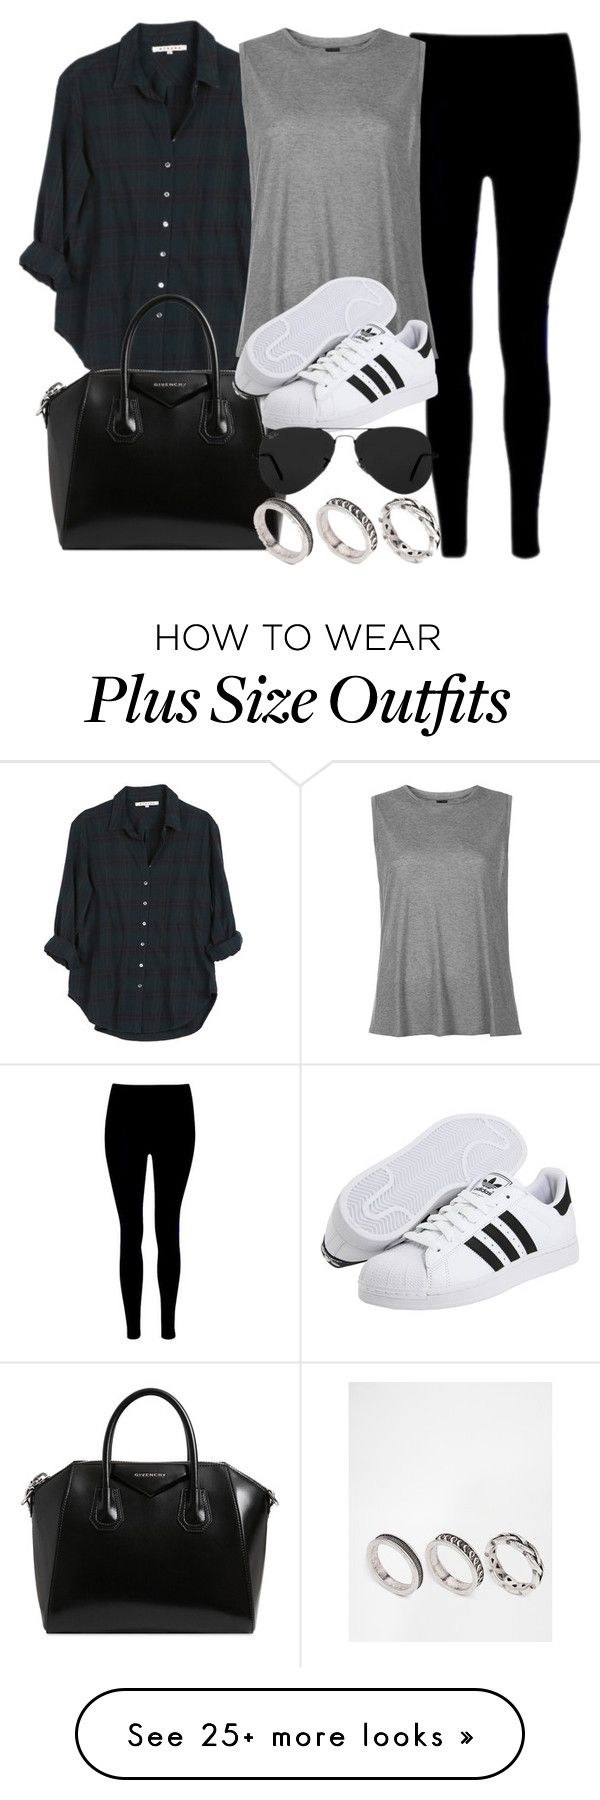 Style #11136 by vany-alvarado on Polyvore featuring Xirena, Givenchy, Boutique, adidas Originals, Ray-Ban and ASOS ,Adidas Shoes Online,#adidas #shoes